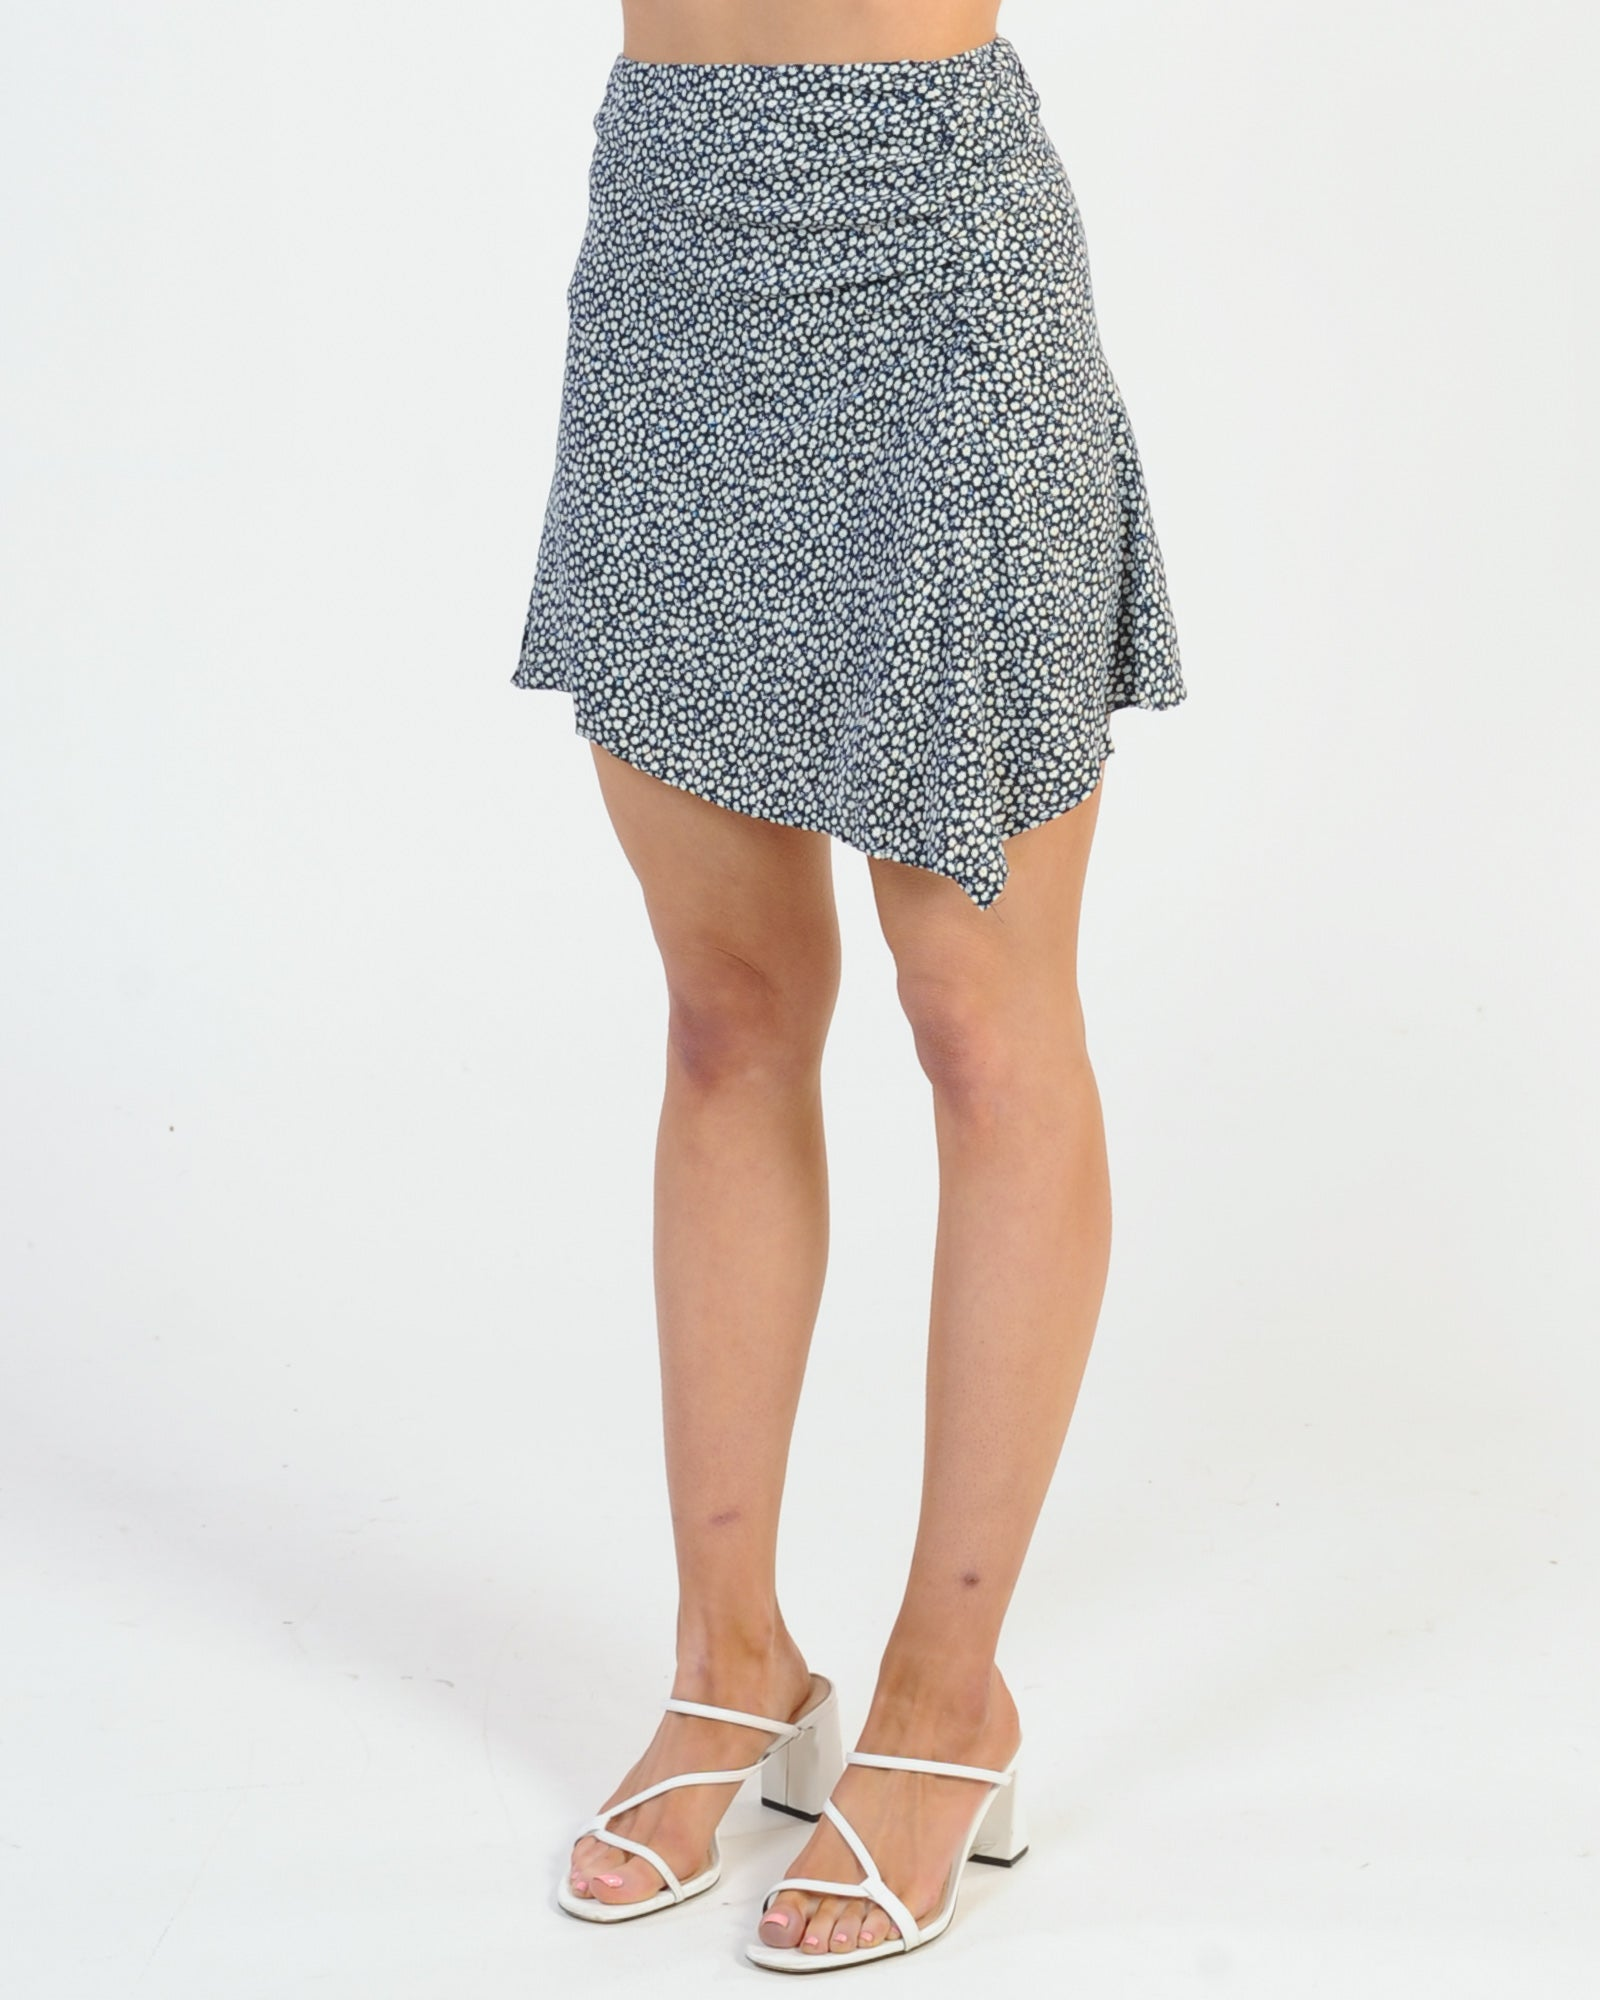 Fell For You Skirt - Navy Floral